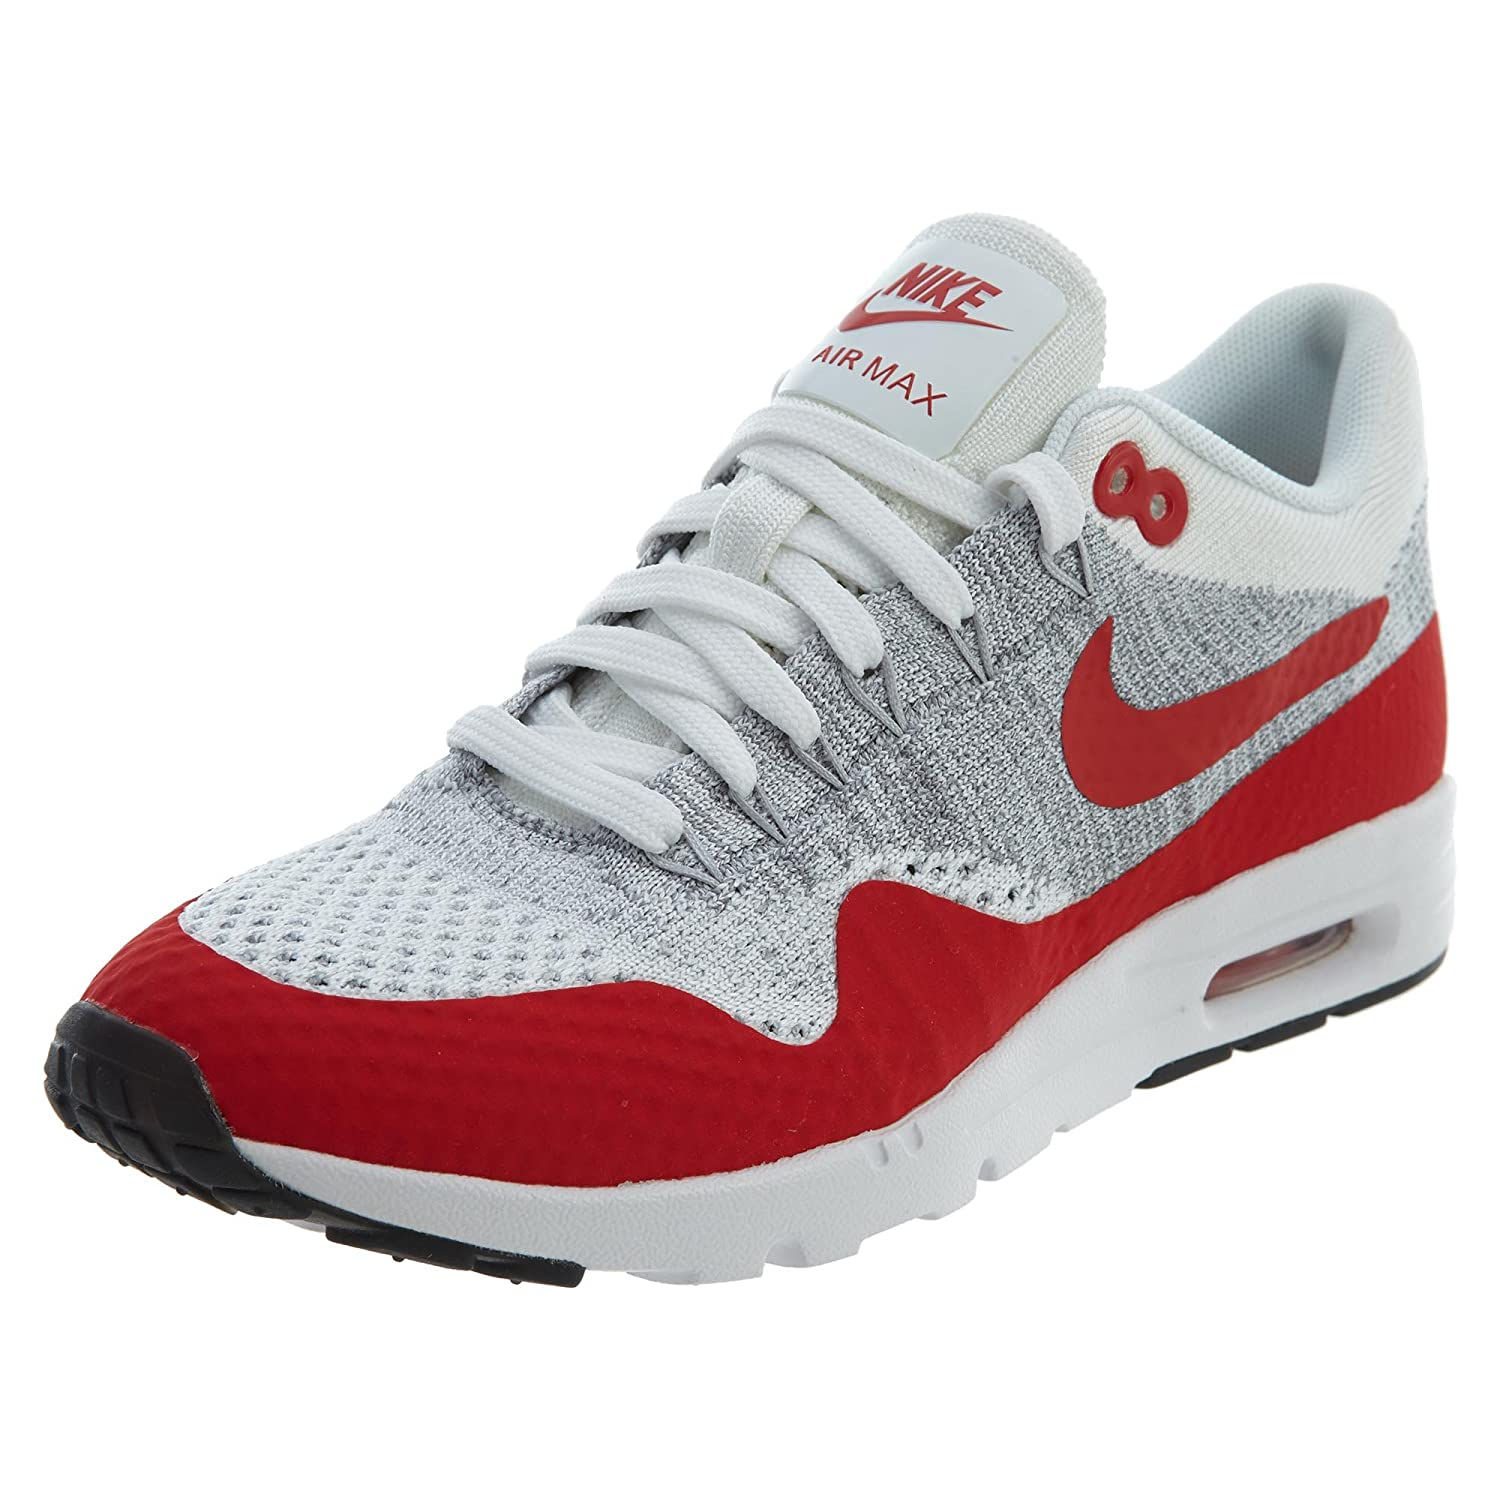 sale retailer ce8cc dc2be Nike Air Max 1 Ultra Flyknit Women's Running Shoes